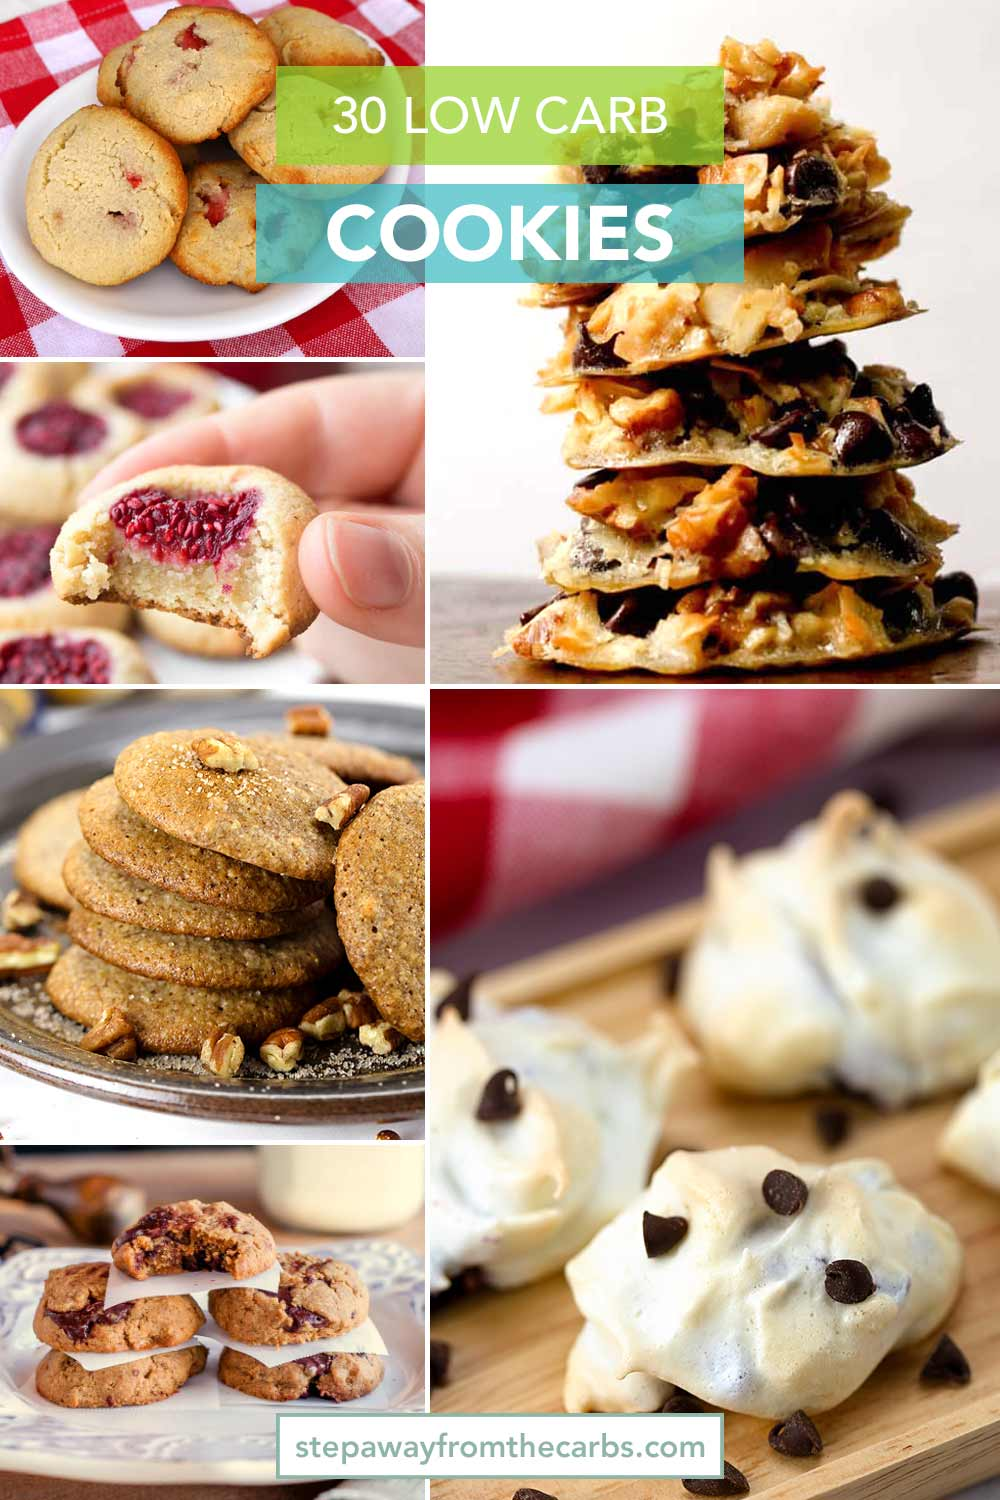 30 Low Carb Cookies - so many great recipes to try and store bought options to choose from!